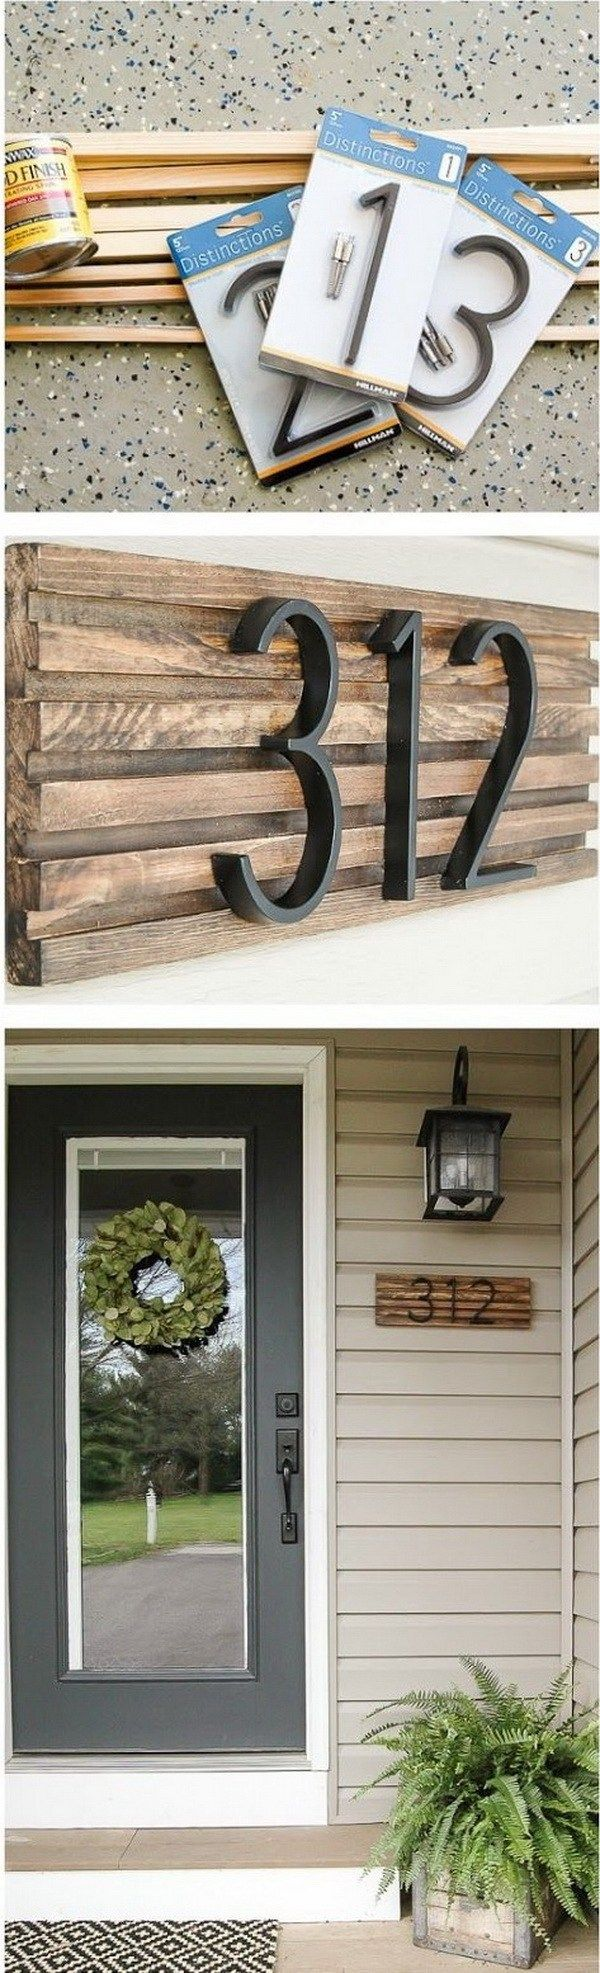 Diy rustic house number sign house numbers give your home a finished look while also